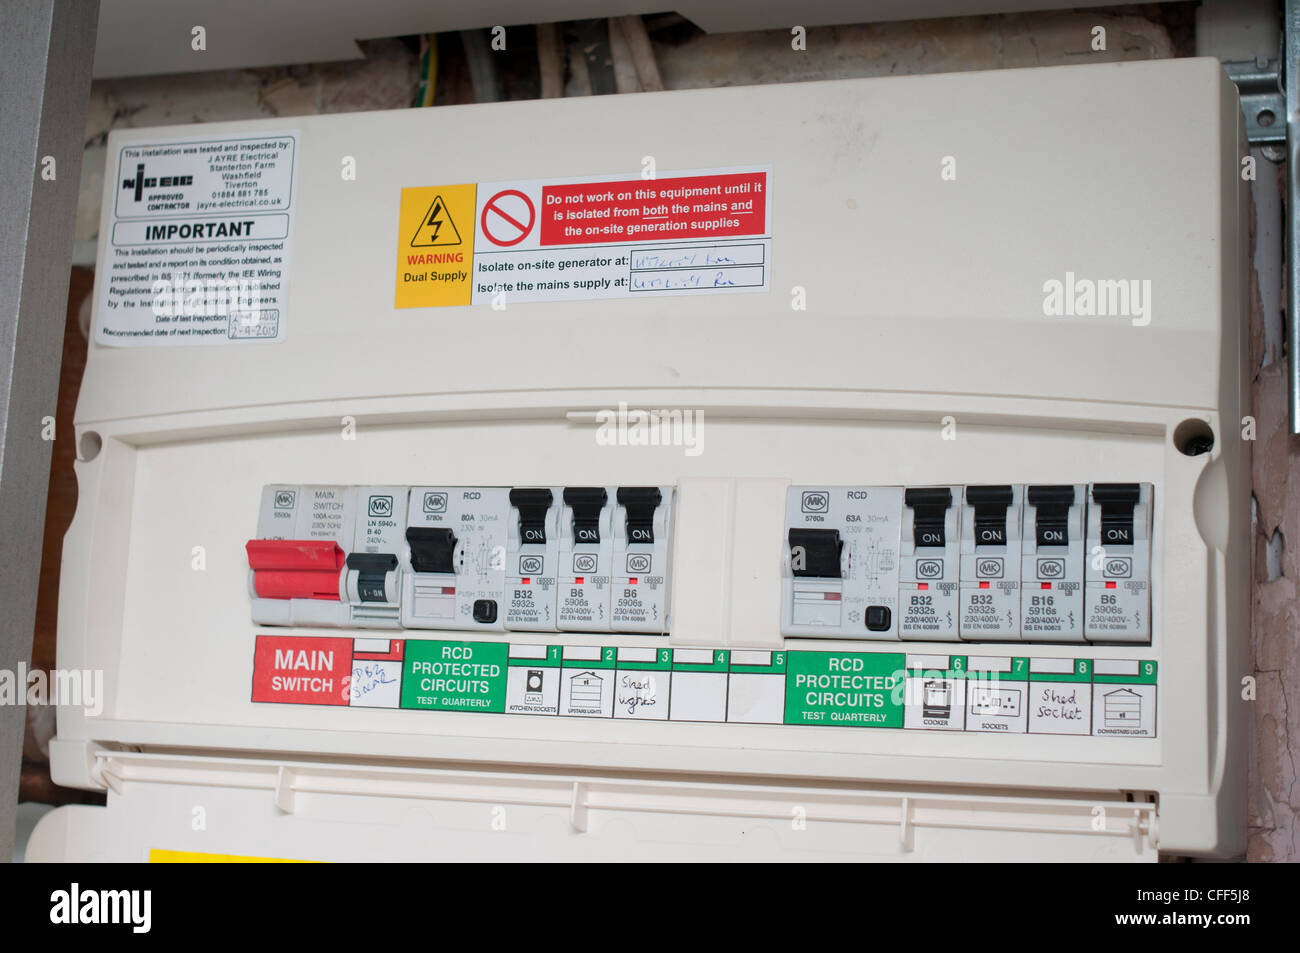 domestic fuse box stock photos \u0026 domestic fuse box stock images alamy Home Circuit Breaker Panel